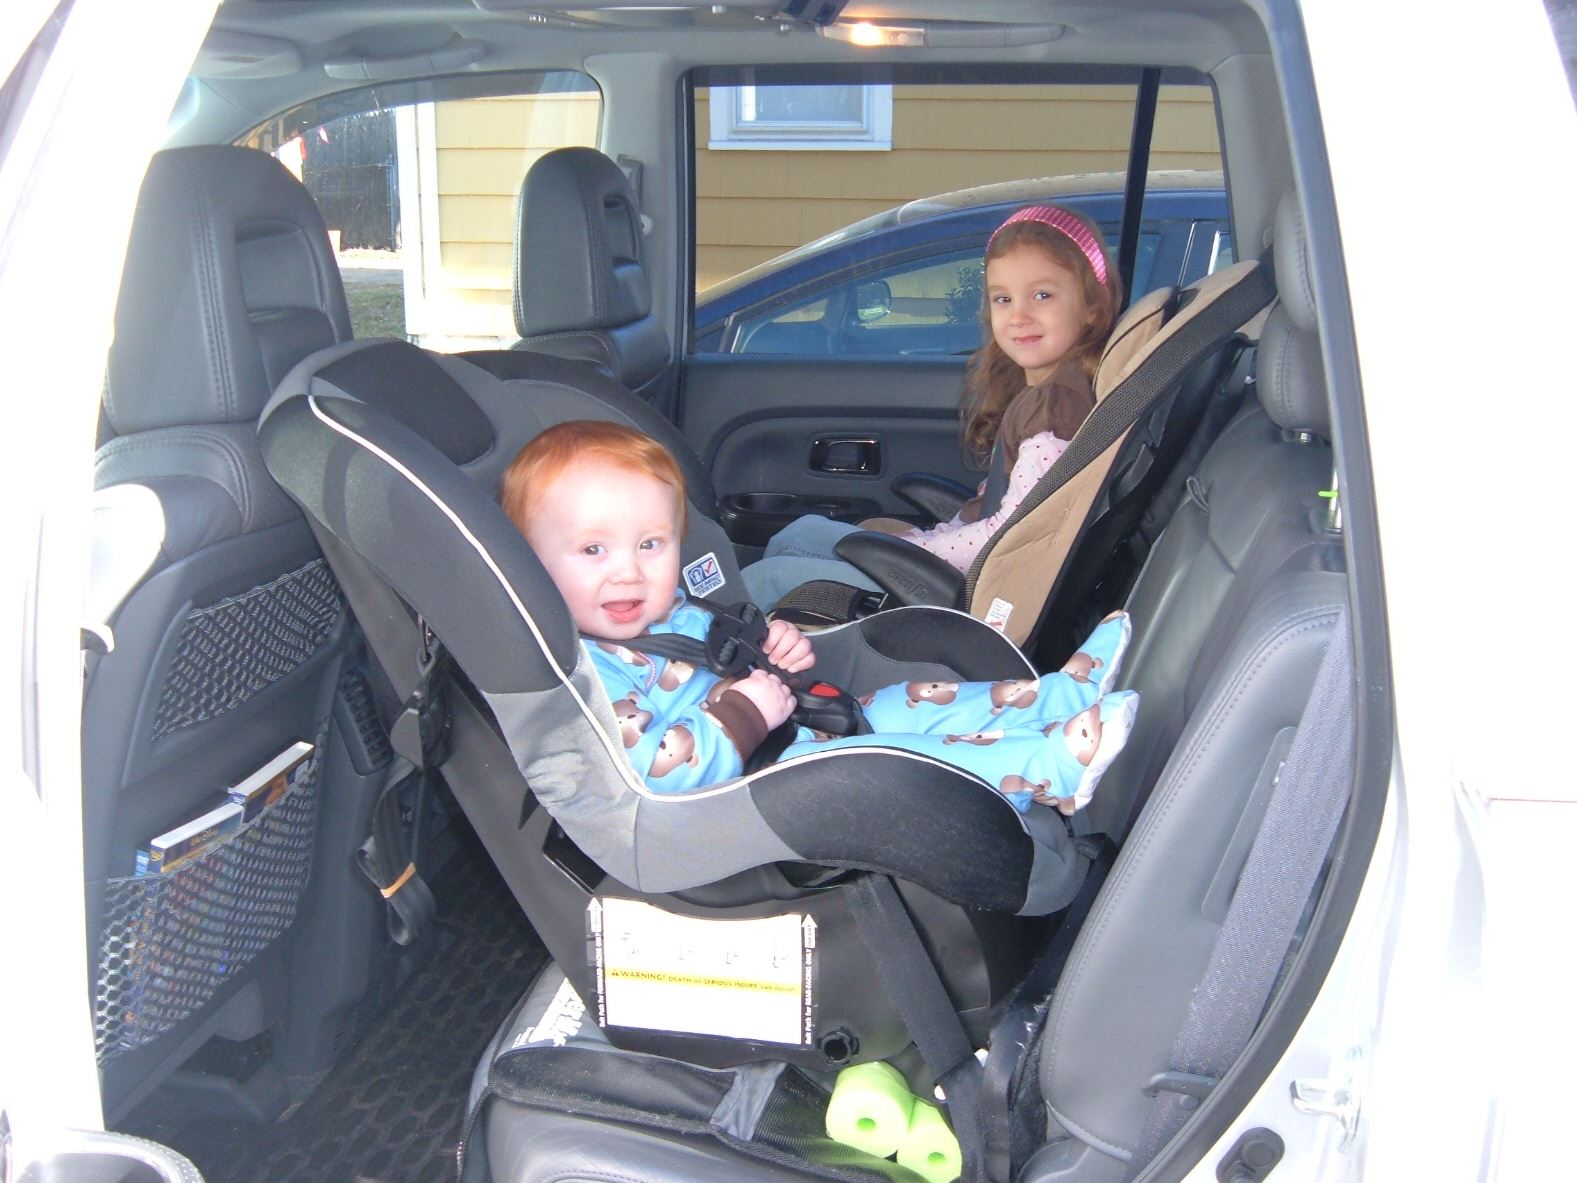 Children in back seat of a vehicle in car seats